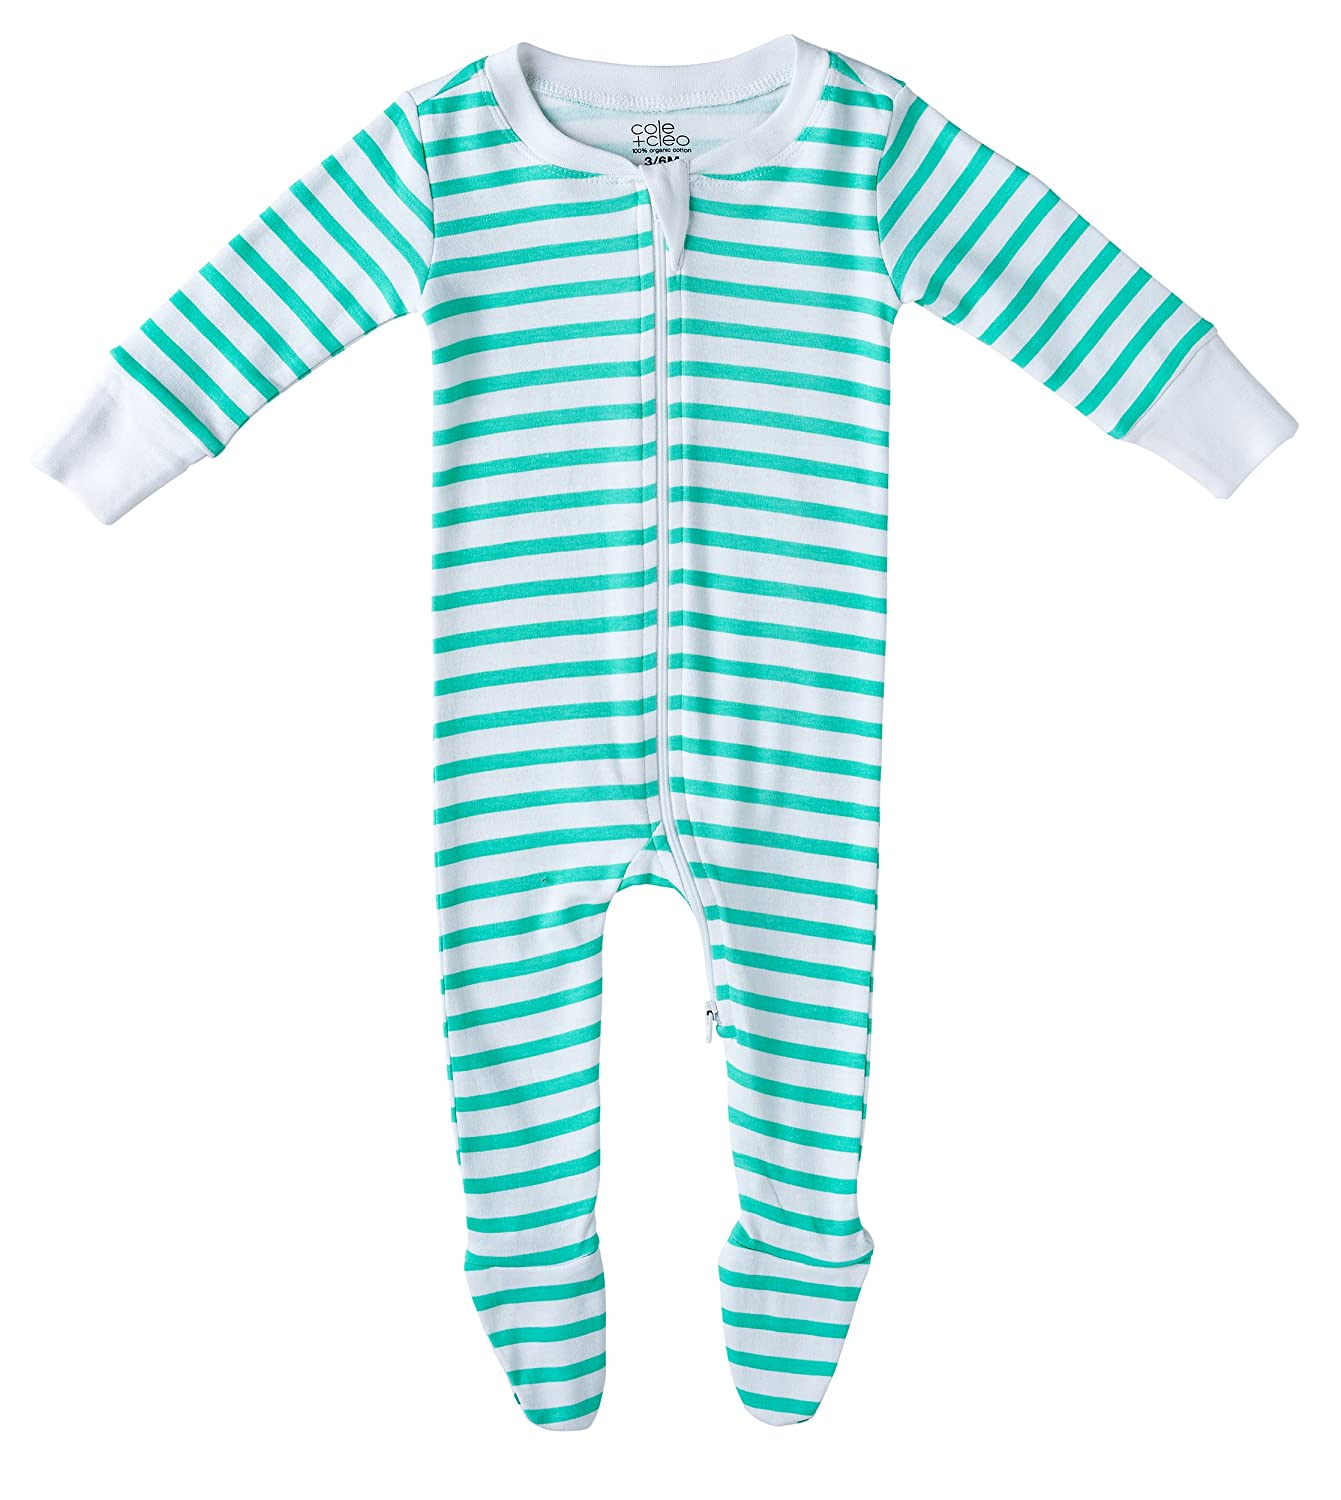 Cole + Cleo Organic Baby Pajamas Footed Sleeper GOTS Certified Organic Cotton